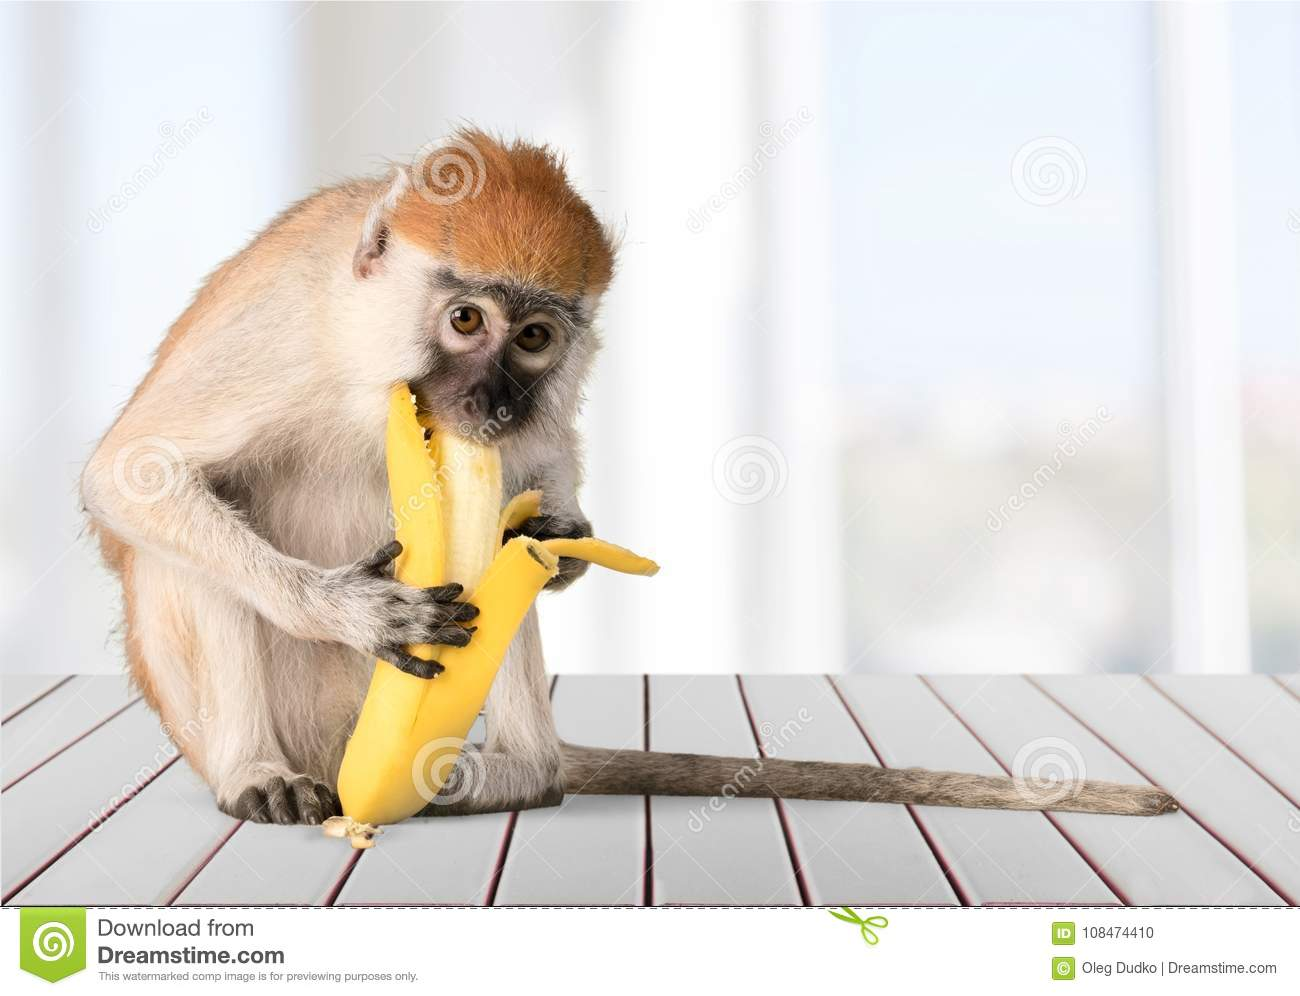 Macaco bonito que come o animal da banana no borrado